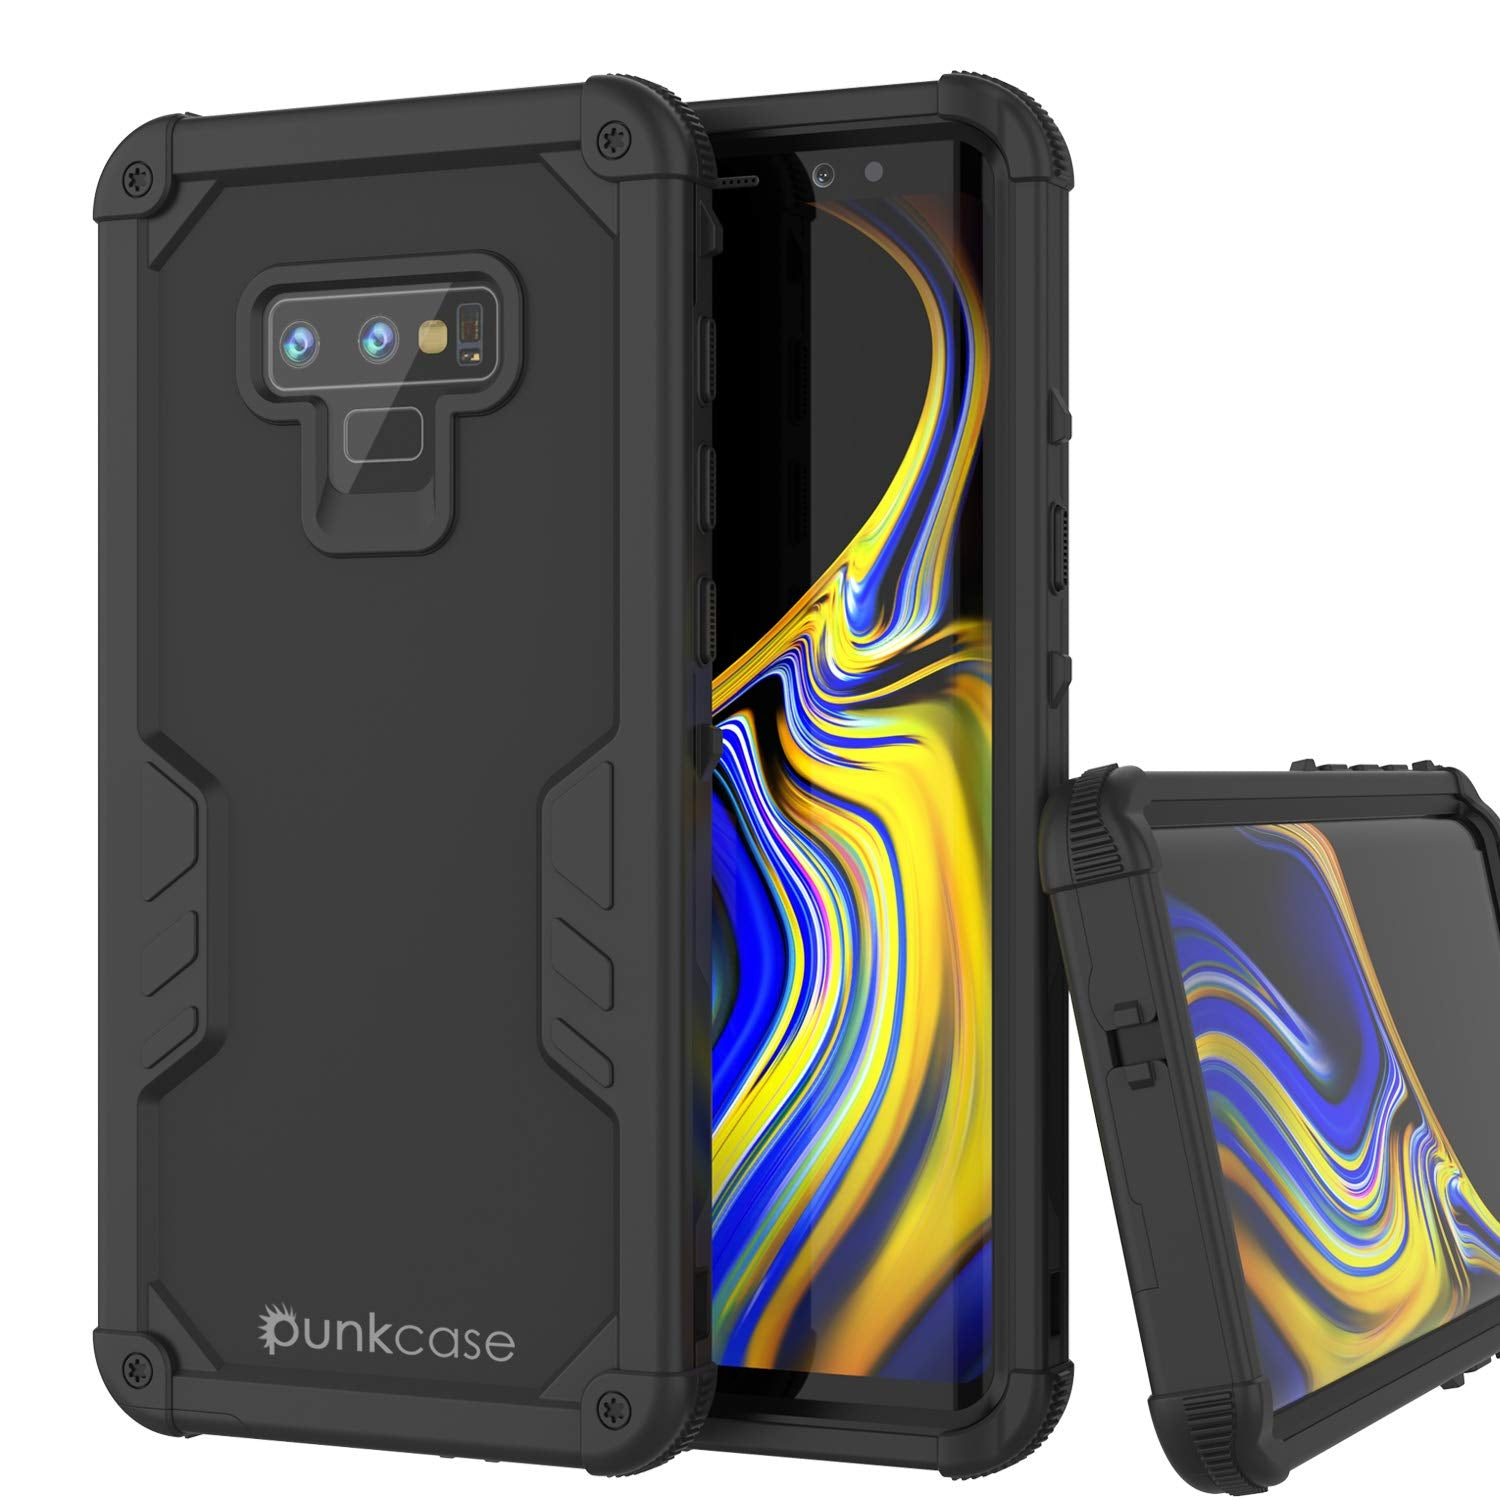 Punkcase Galaxy Note 9 Waterproof Case [Navy Seal Extreme Series] Armor Cover W/ Built In Screen Protector [Black]